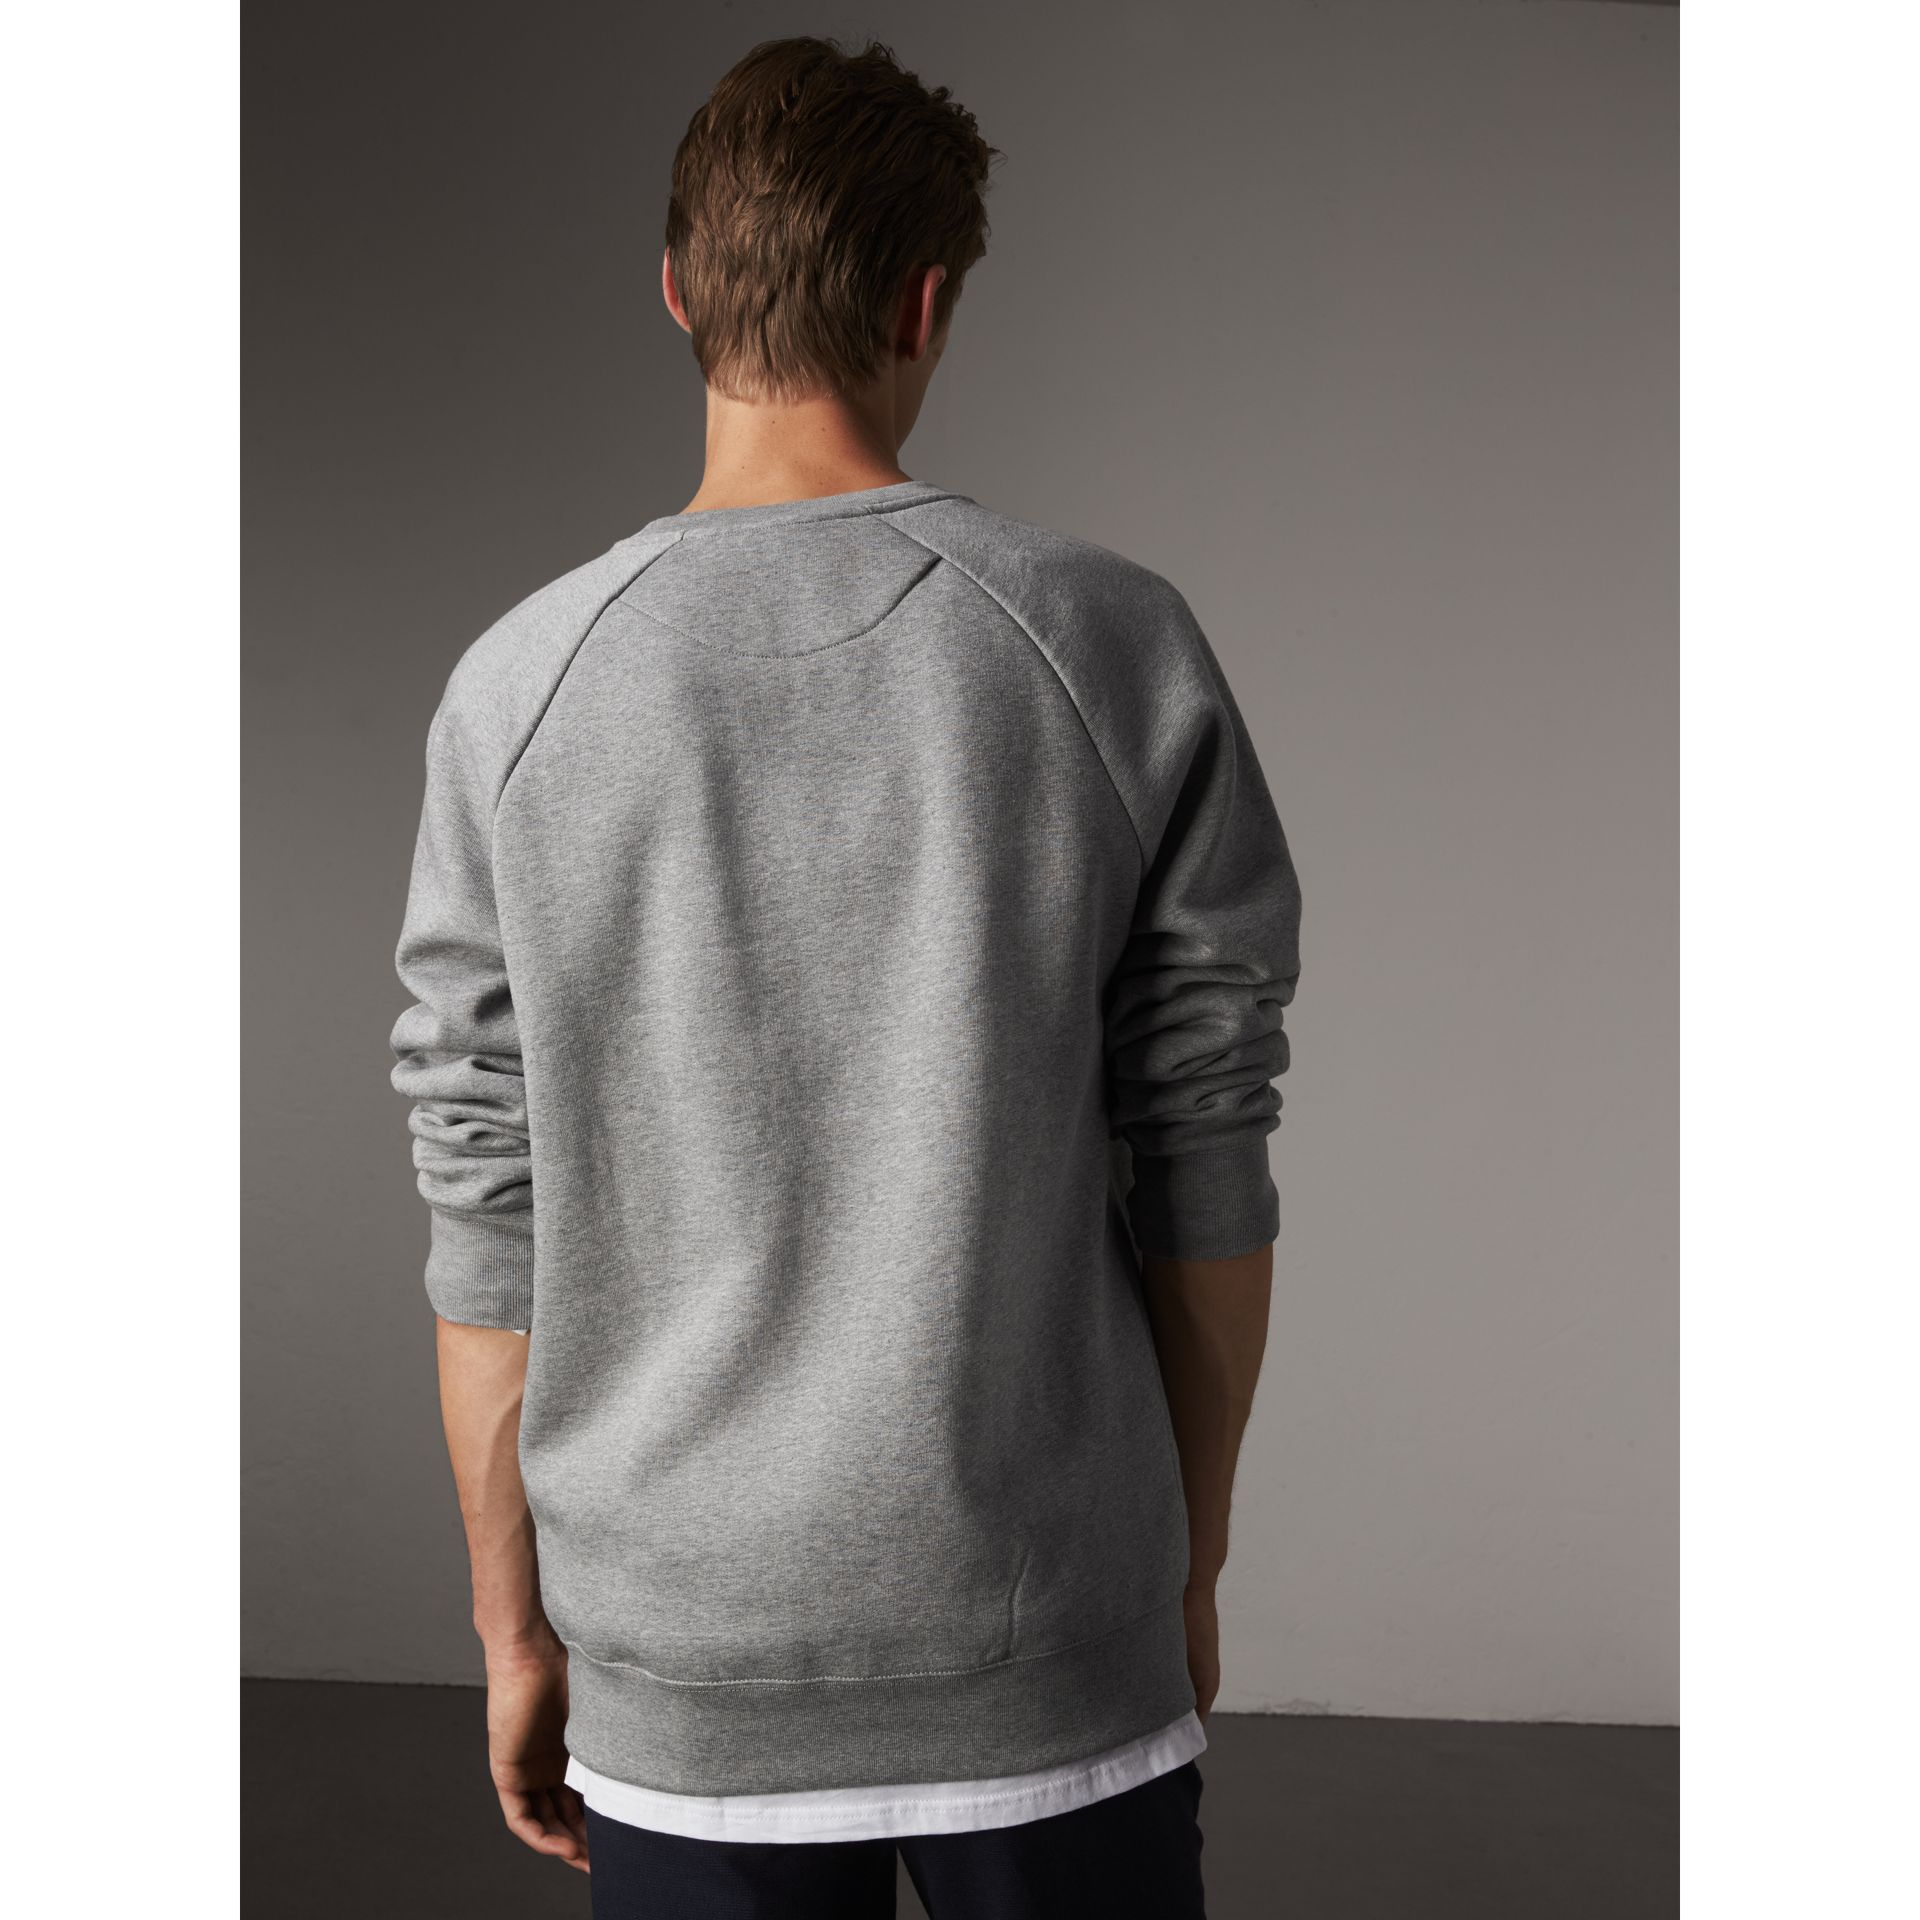 Open Spaces Graphic Motif Cotton Blend Sweatshirt in Pale Grey Melange - Men | Burberry Australia - gallery image 3